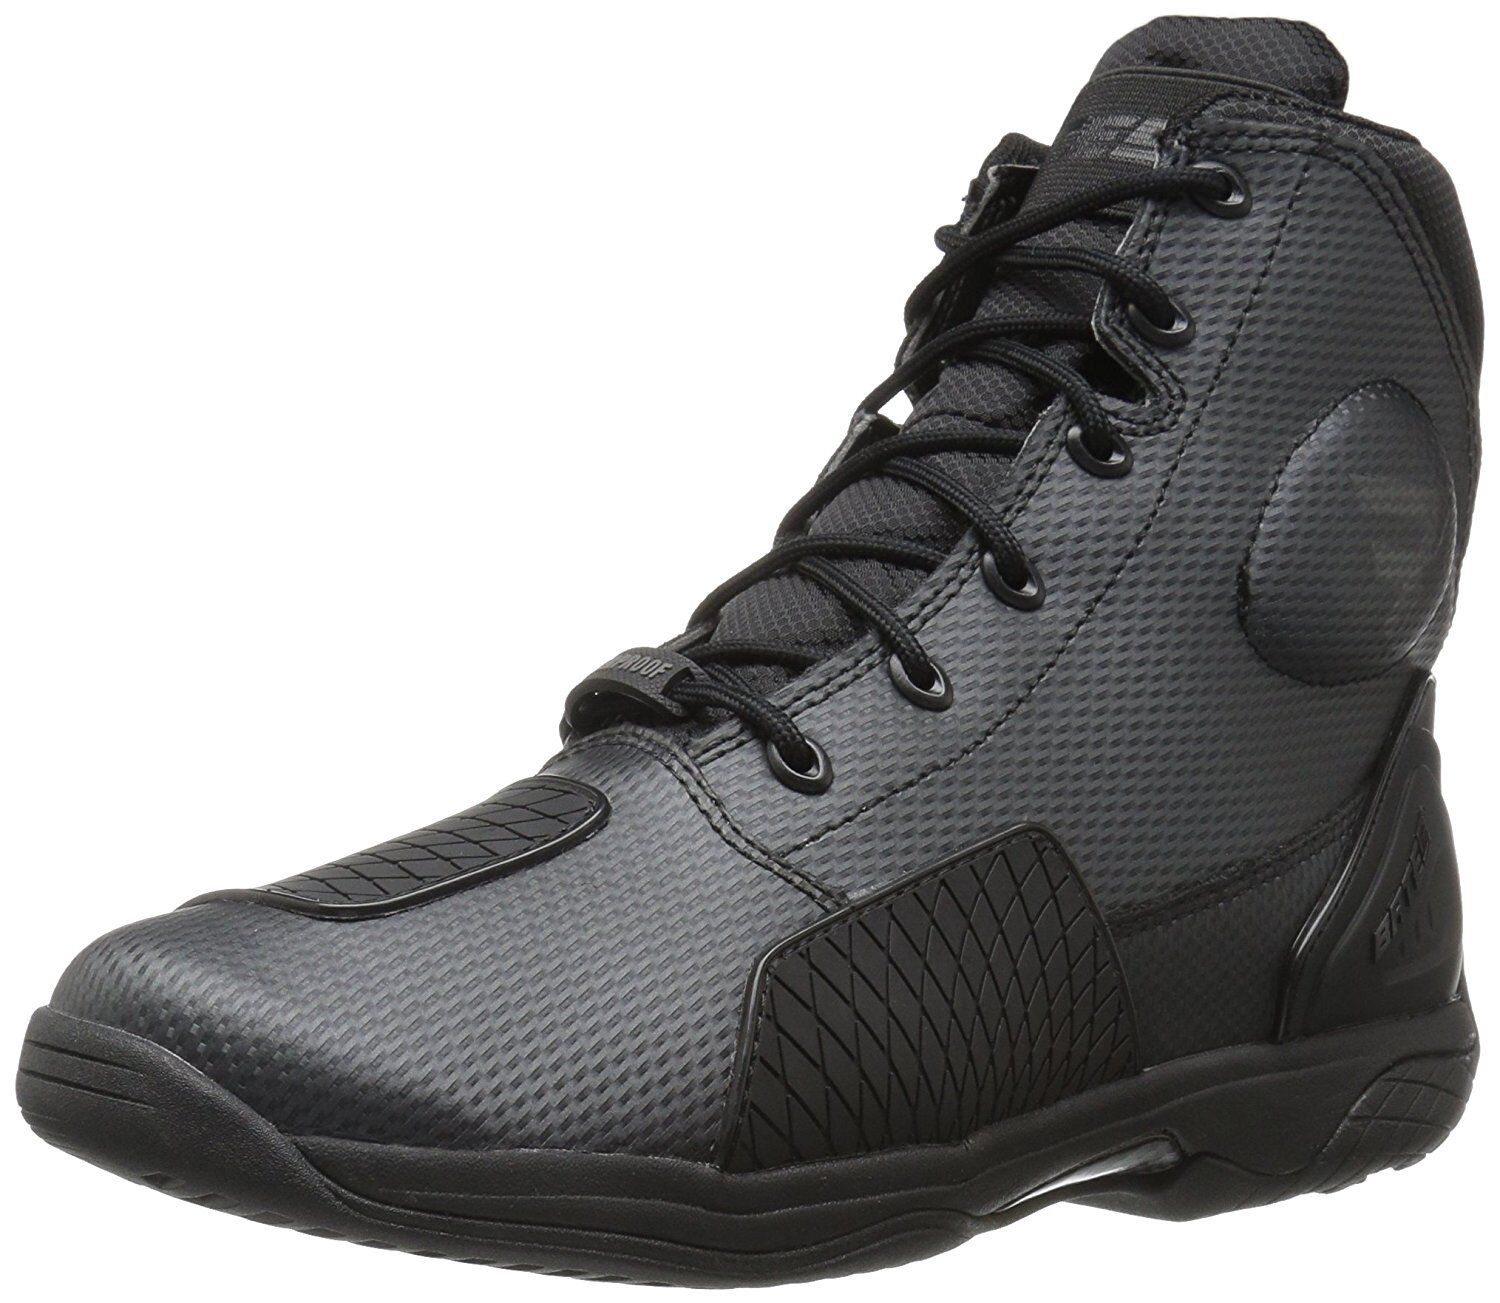 Bates 8801 Mens SP500 Adrenaline Work Boot FAST FREE USA SHIPPING